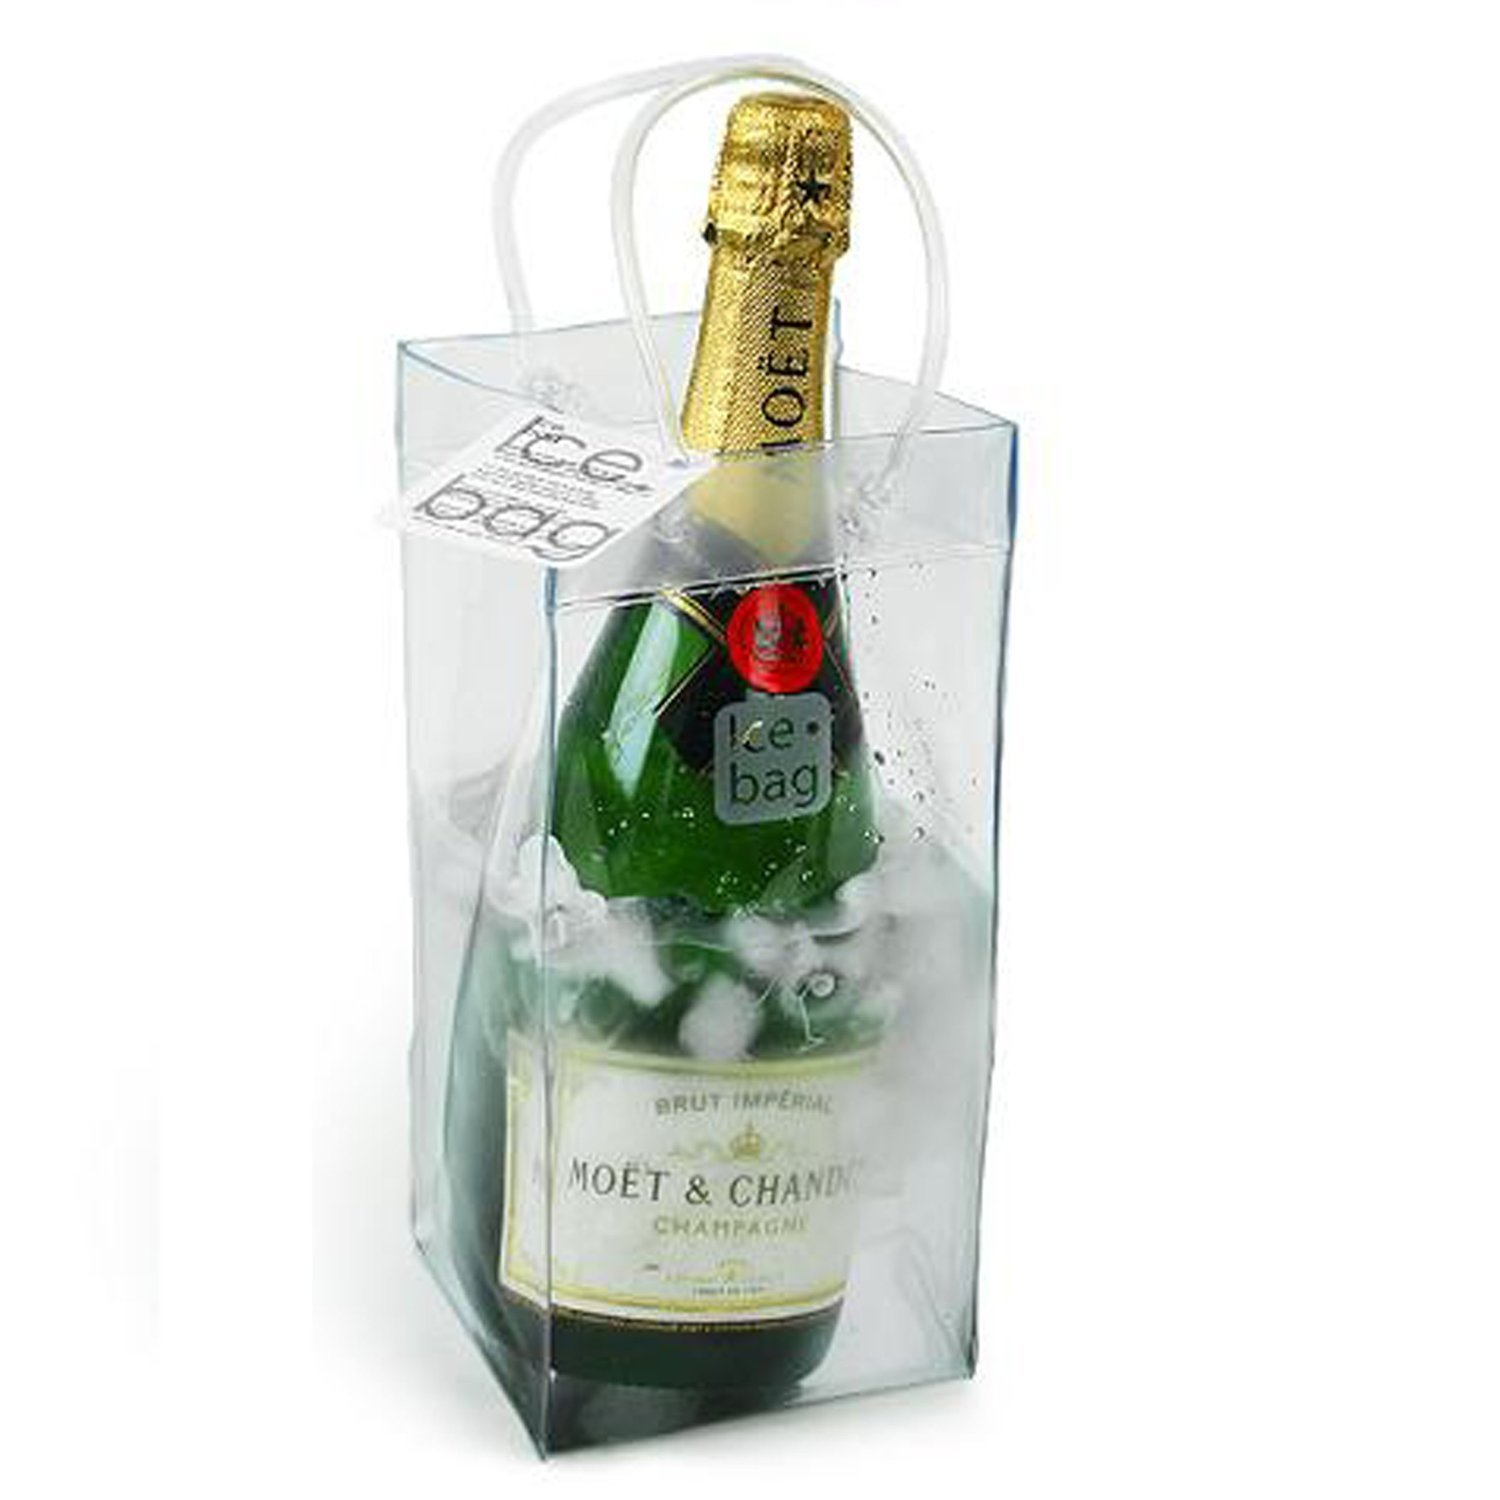 Durable PVC Water Resistant Wine Ice Bag - Dim: 6'Dx 6'W x 9'H, Set of 2 COMIN16JU003113